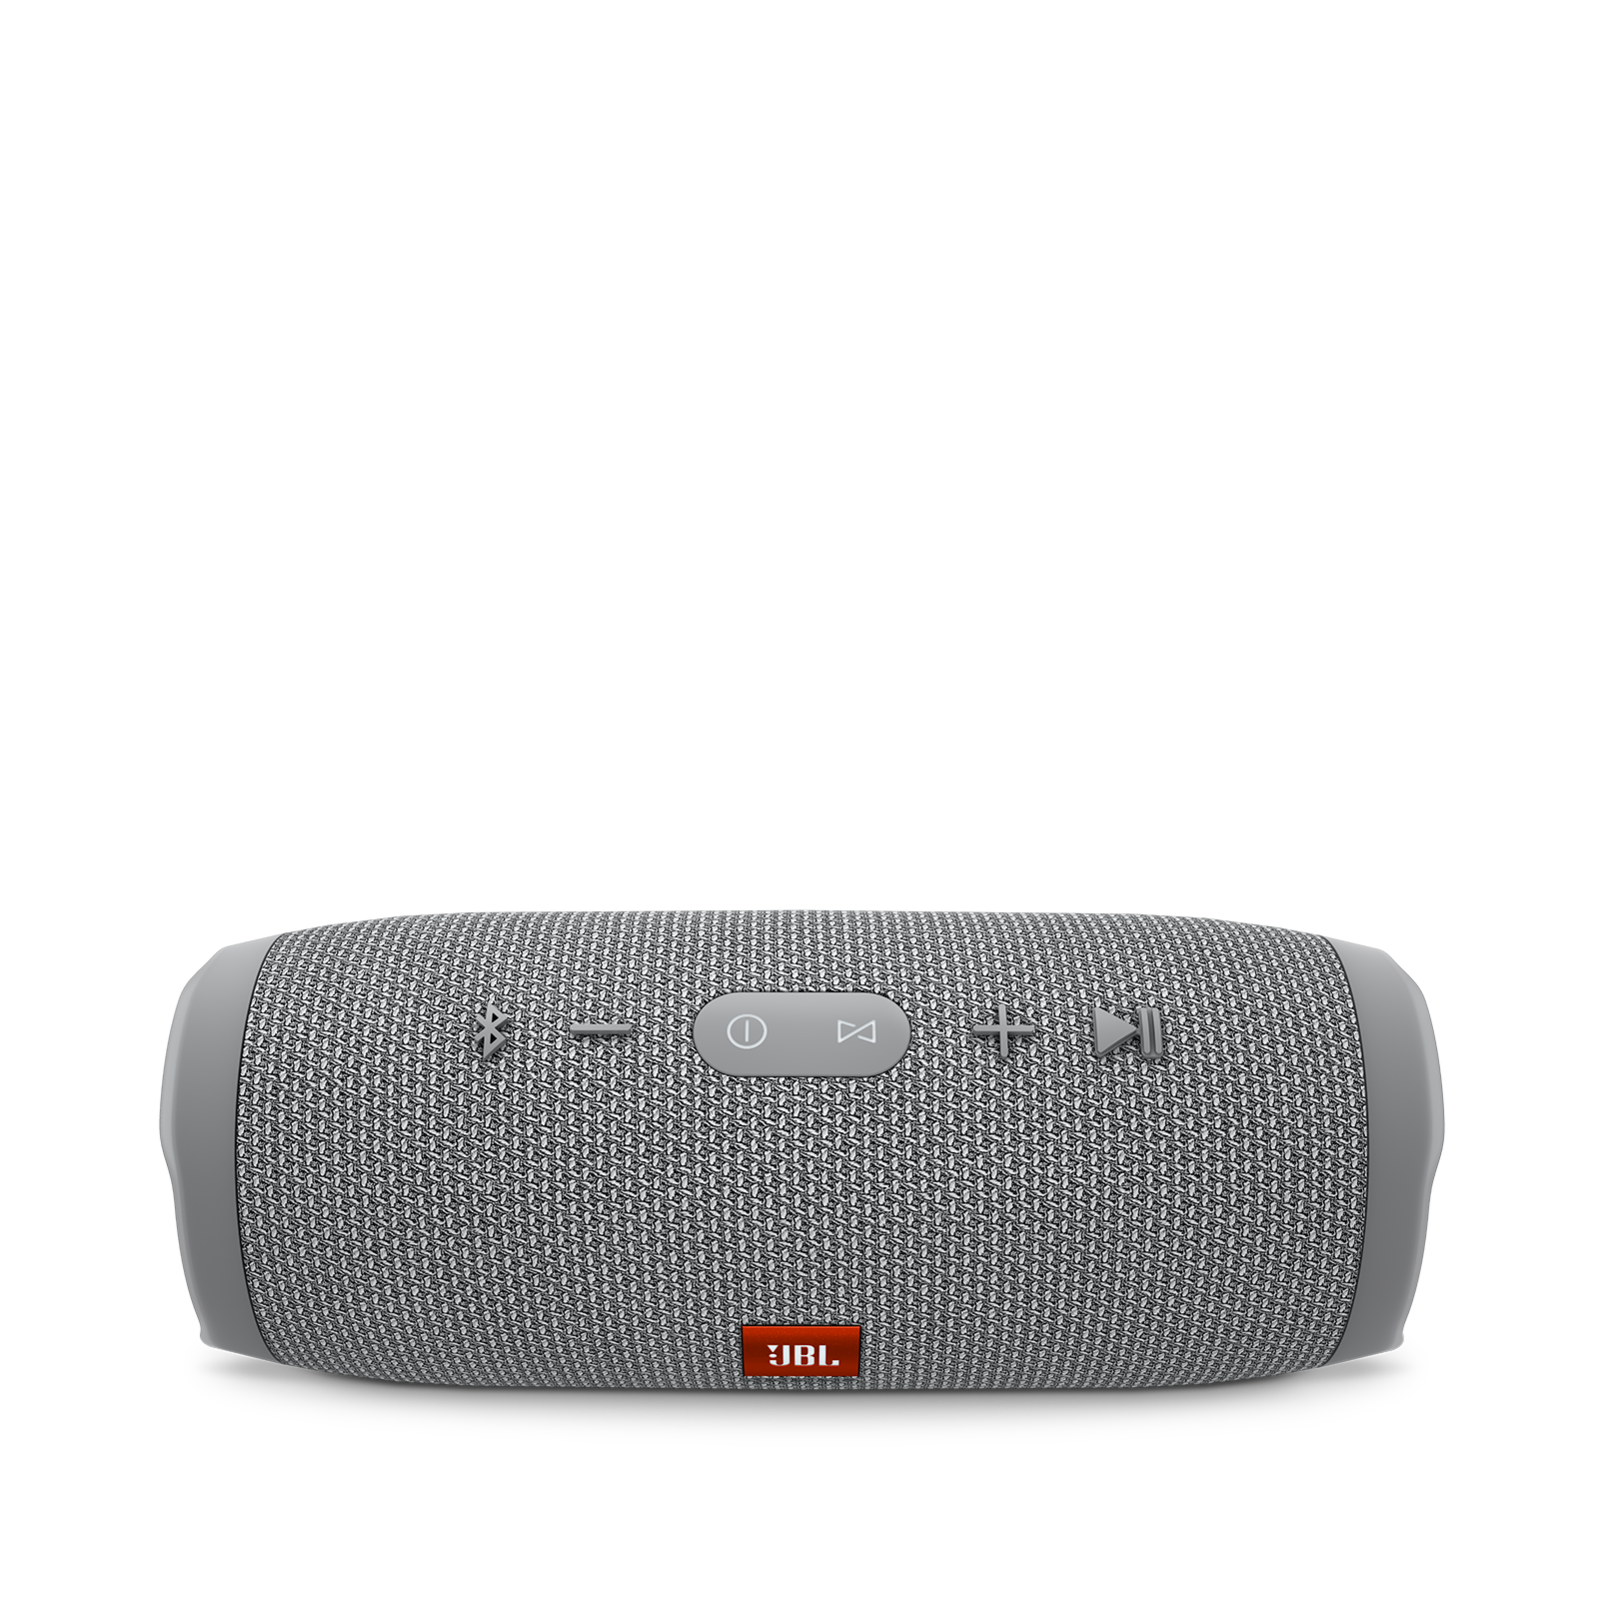 JBL Charge 3 - Grey - Full-featured waterproof portable speaker with high-capacity battery to charge your devices - Detailshot 2